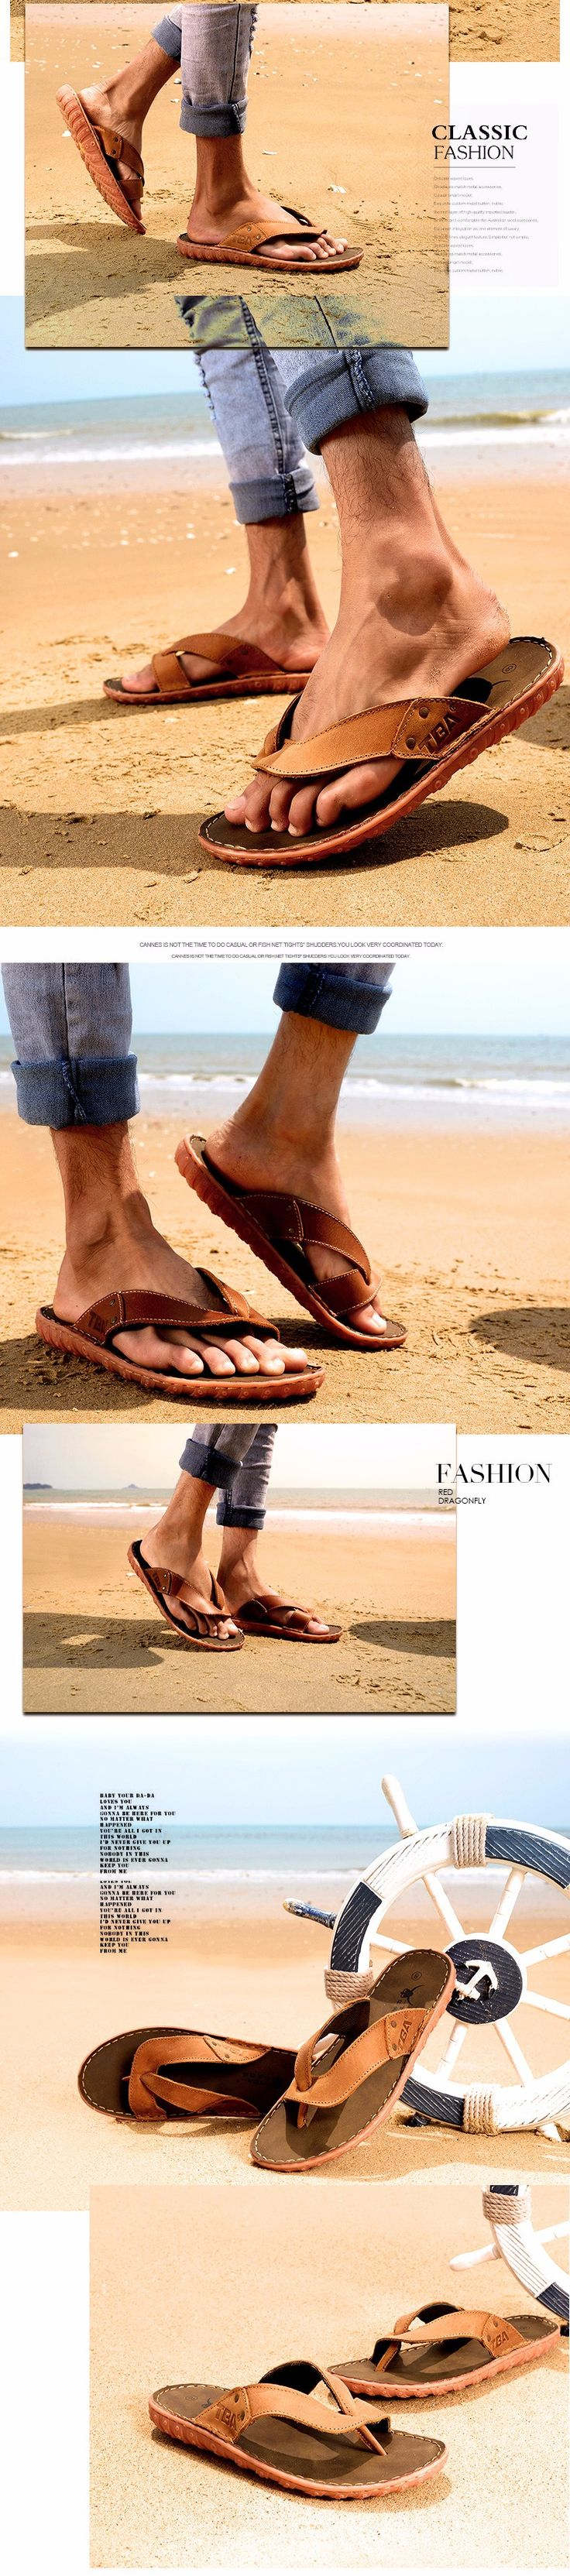 VISIT --> http://playertronics.com/products/2016-new-mens-flip-flops-genuine-cowhide-leather-slippers-summer-fashion-beach-sandals-shoes-for-men-plus-size-39-44/ http://playertronics.com/products/2016-new-mens-flip-flops-genuine-cowhide-leather-slippers-summer-fashion-beach-sandals-shoes-for-men-plus-size-39-44/